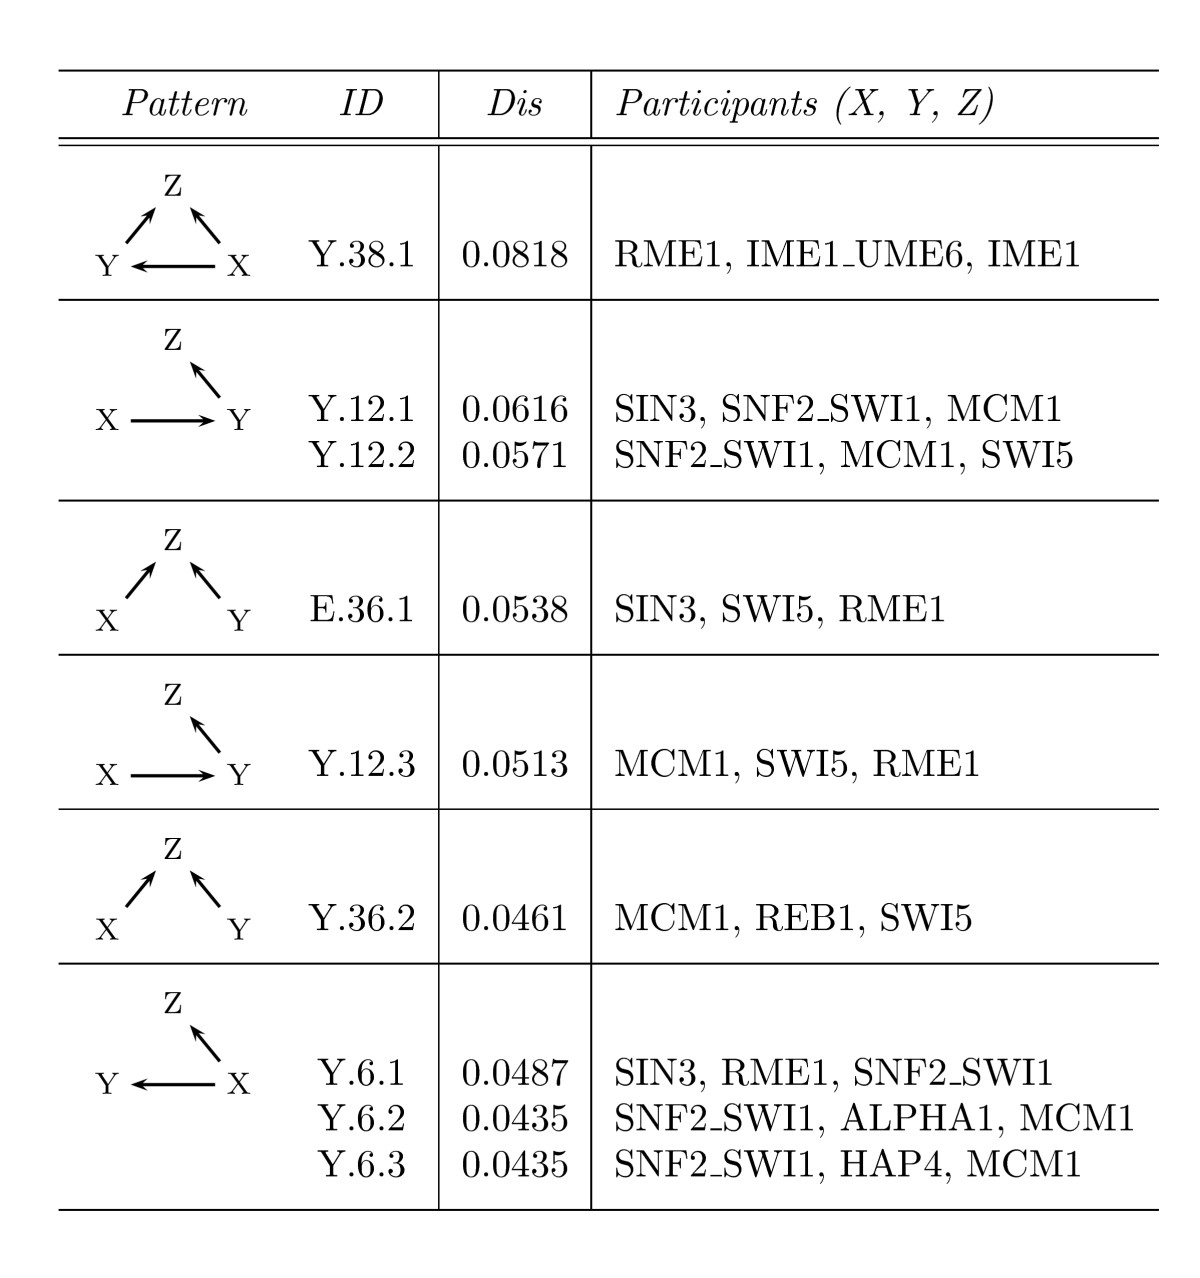 http://static-content.springer.com/image/art%3A10.1186%2F1752-0509-3-53/MediaObjects/12918_2008_Article_321_Fig7_HTML.jpg